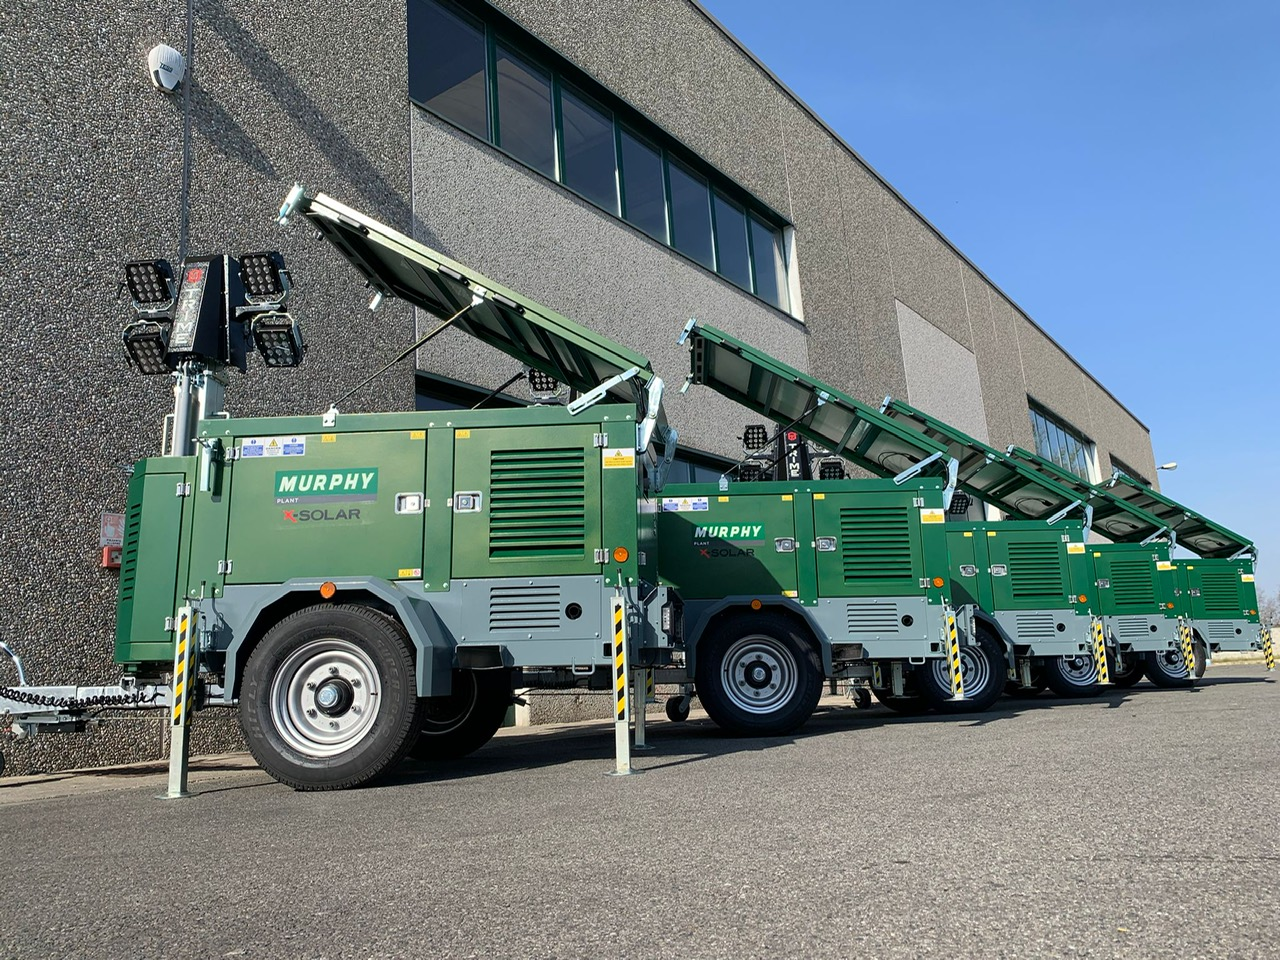 Murphy Plant adds more lighting towers